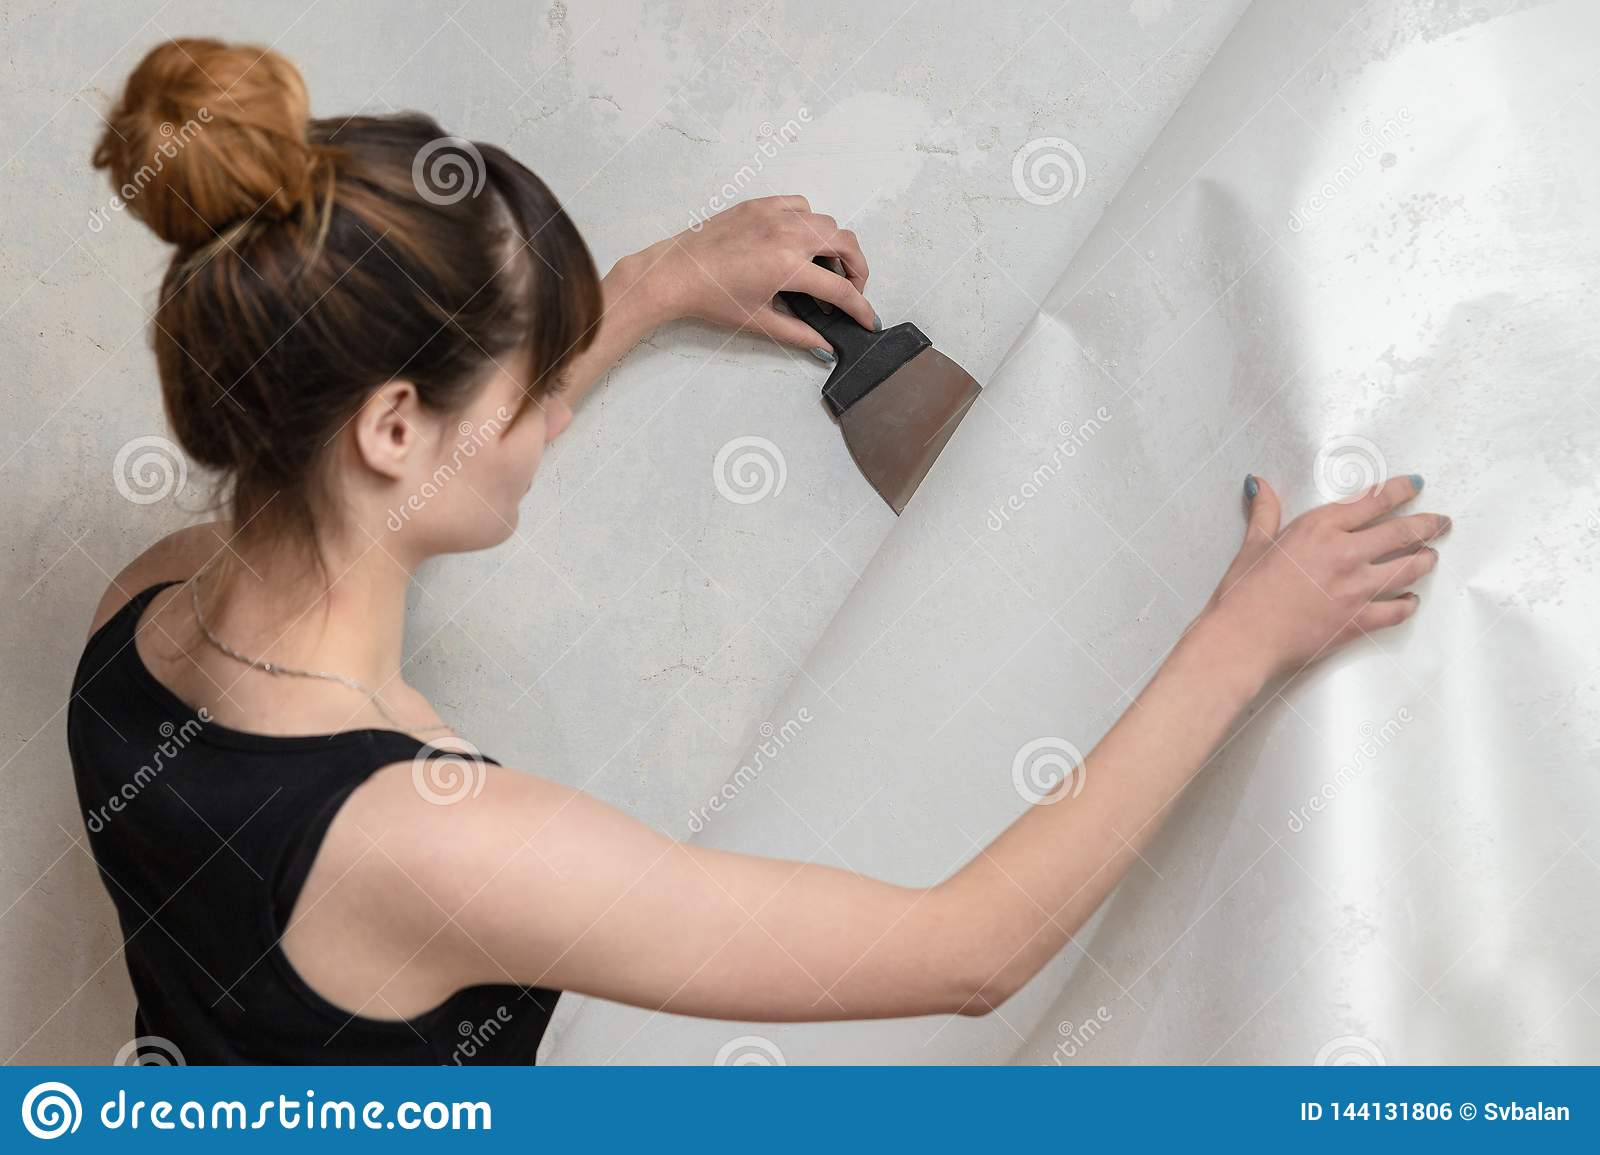 The girl tears off the old wallpaper from the concrete wall and holds a spatula.